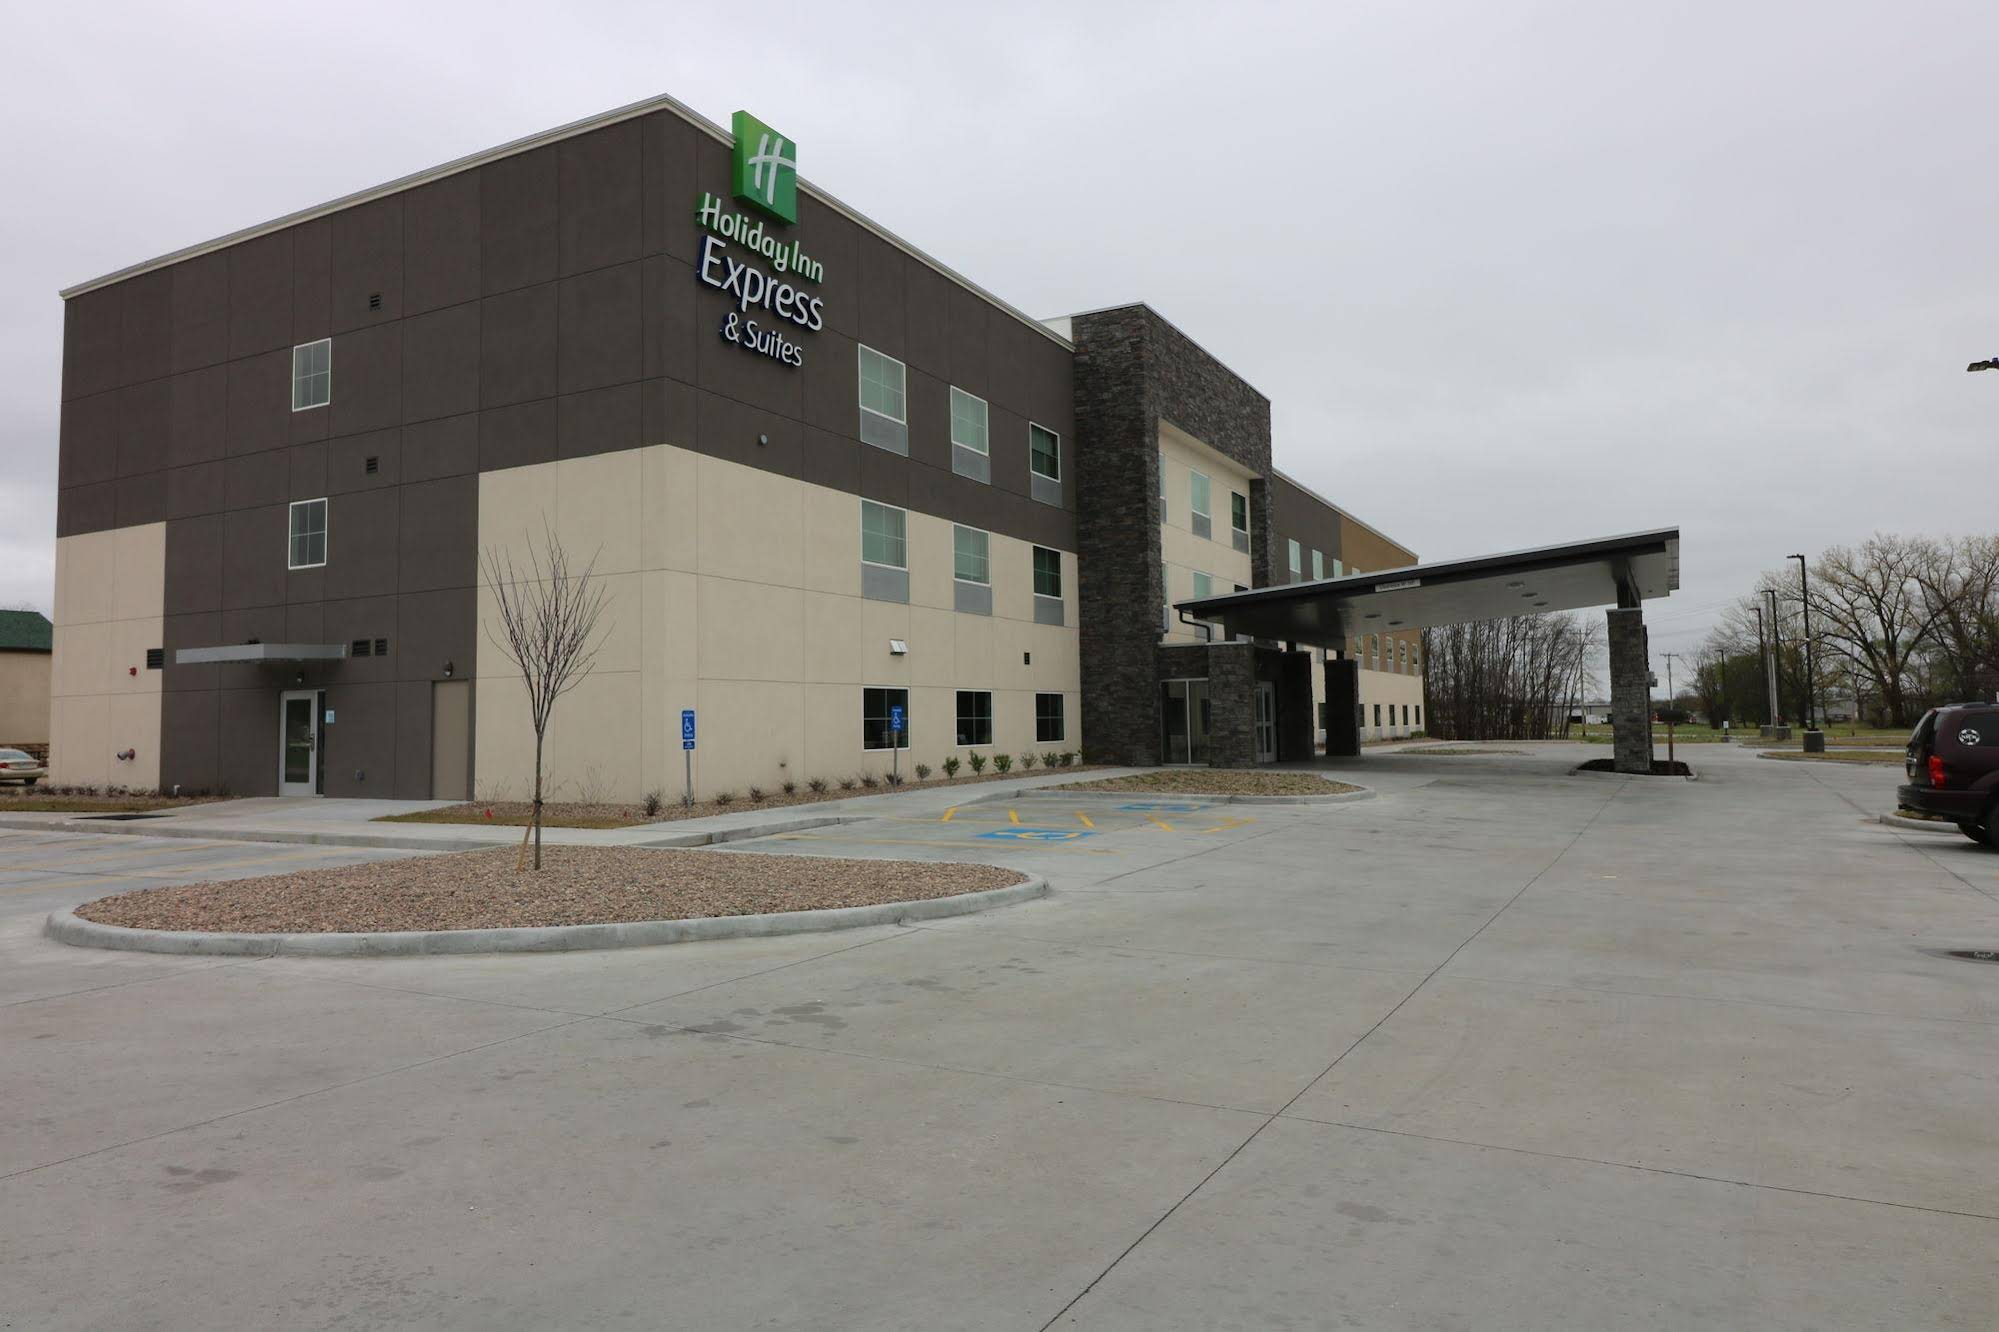 Holiday Inn Express and Suites Coffeyville